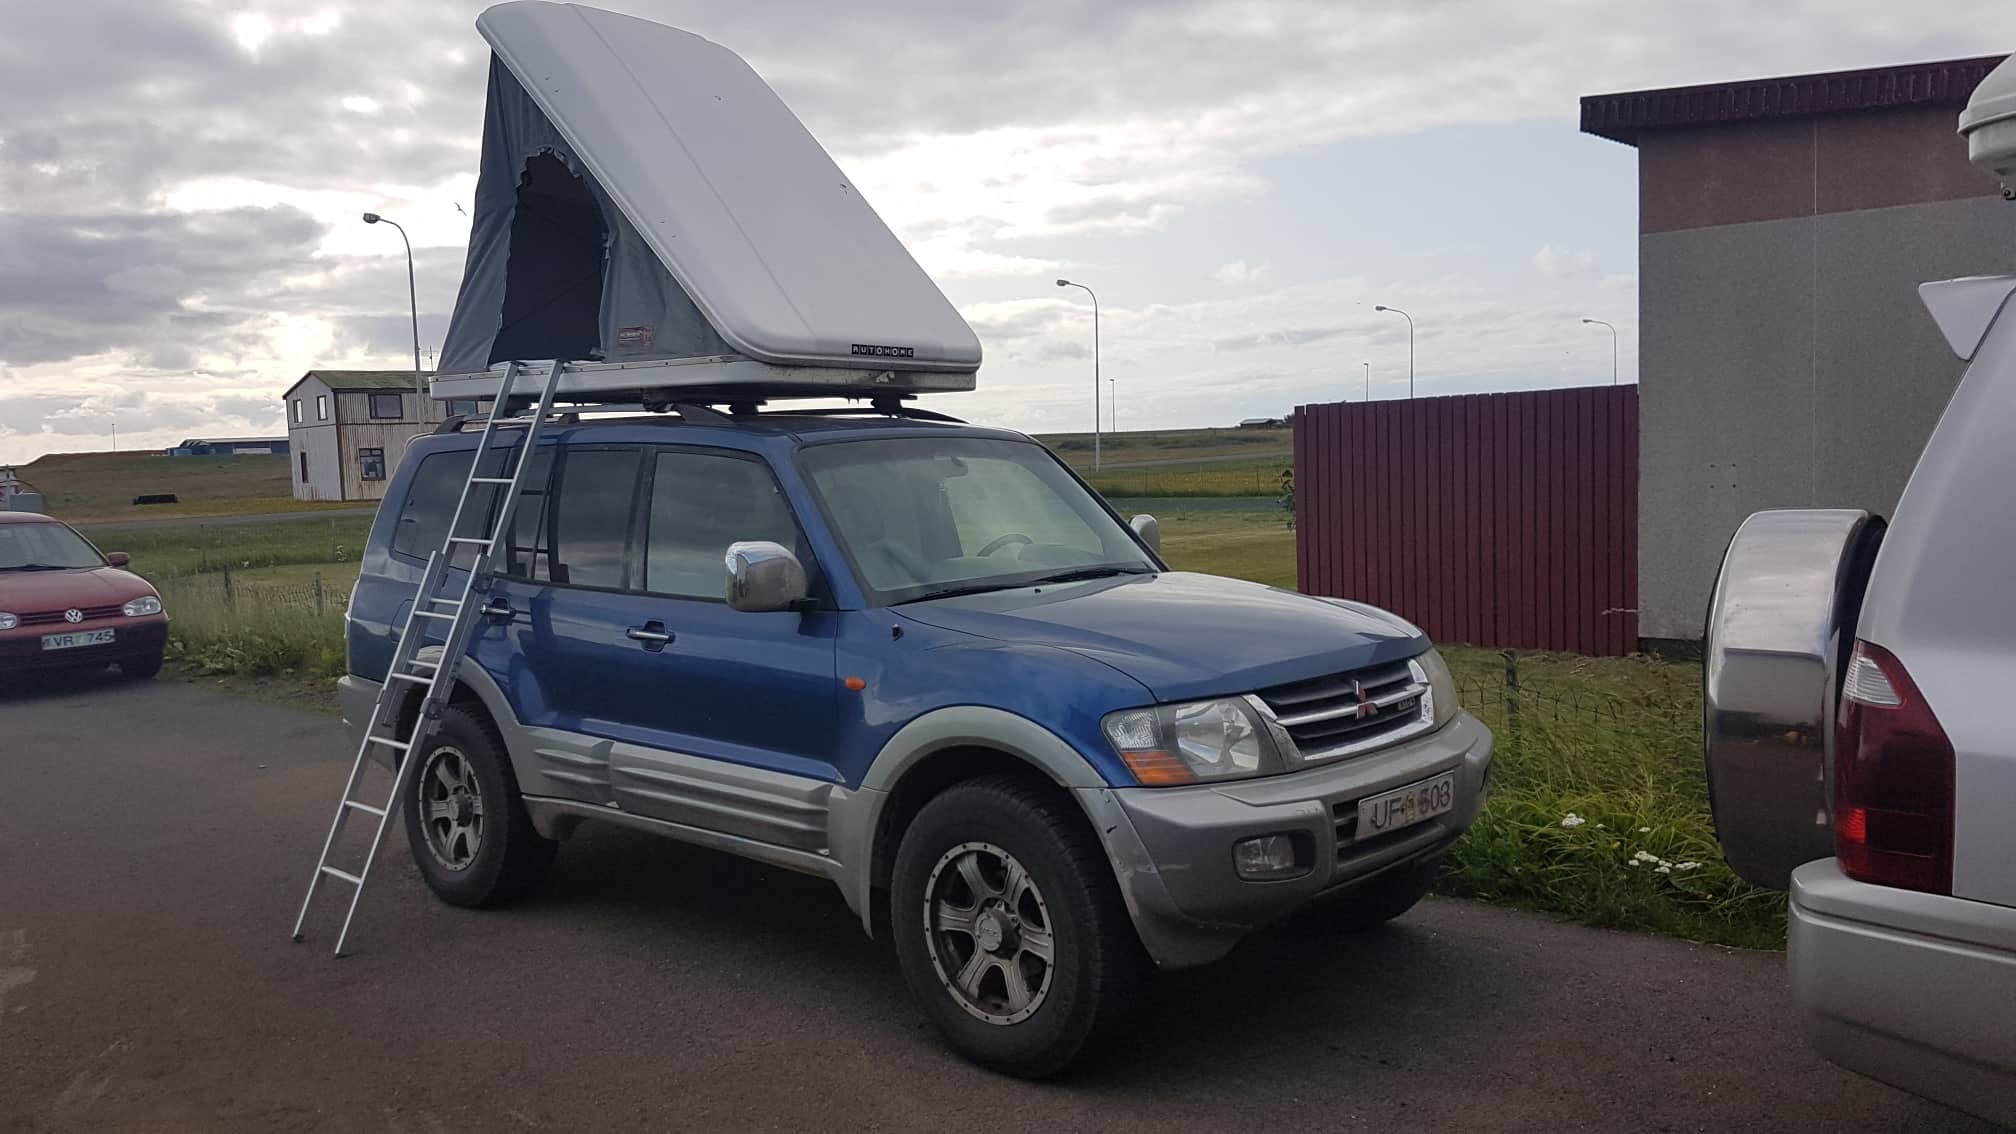 Mitsubishi Pajero + Roof Tent  / Automatic / 4x4 / Diesel / Sleeping bags/  Expedition kit for 2 people. Sleeping in a tent plus a camping kit.